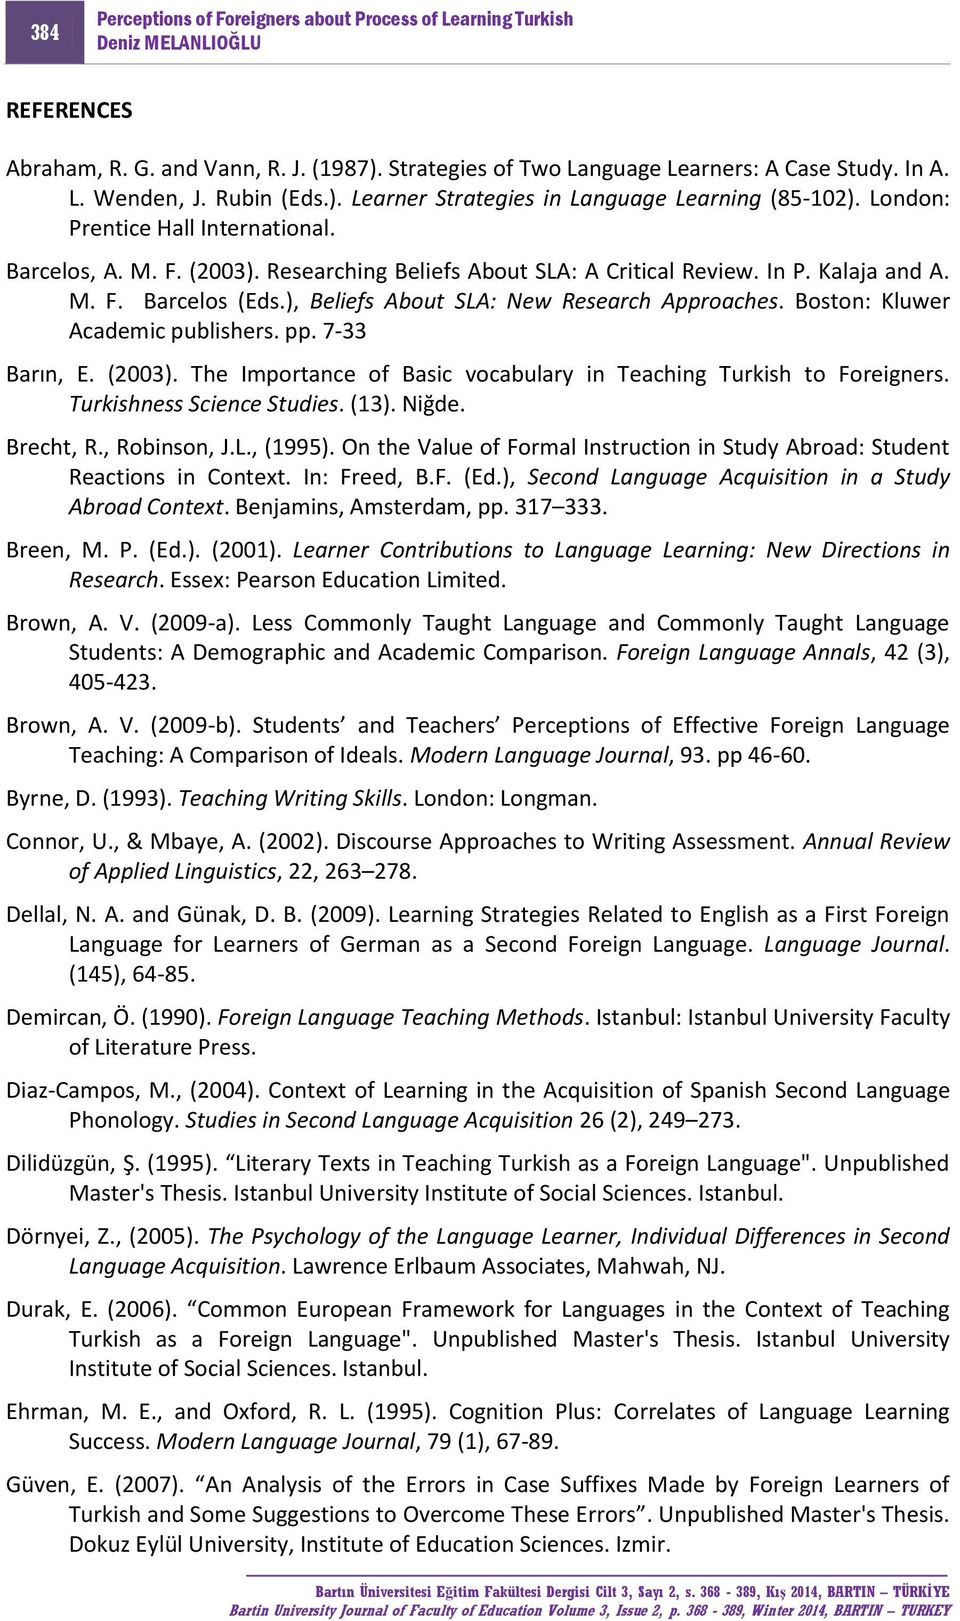 Boston: Kluwer Academic publishers. pp. 7-33 Barın, E. (2003). The Importance of Basic vocabulary in Teaching Turkish to Foreigners. Turkishness Science Studies. (13). Niğde. Brecht, R., Robinson, J.